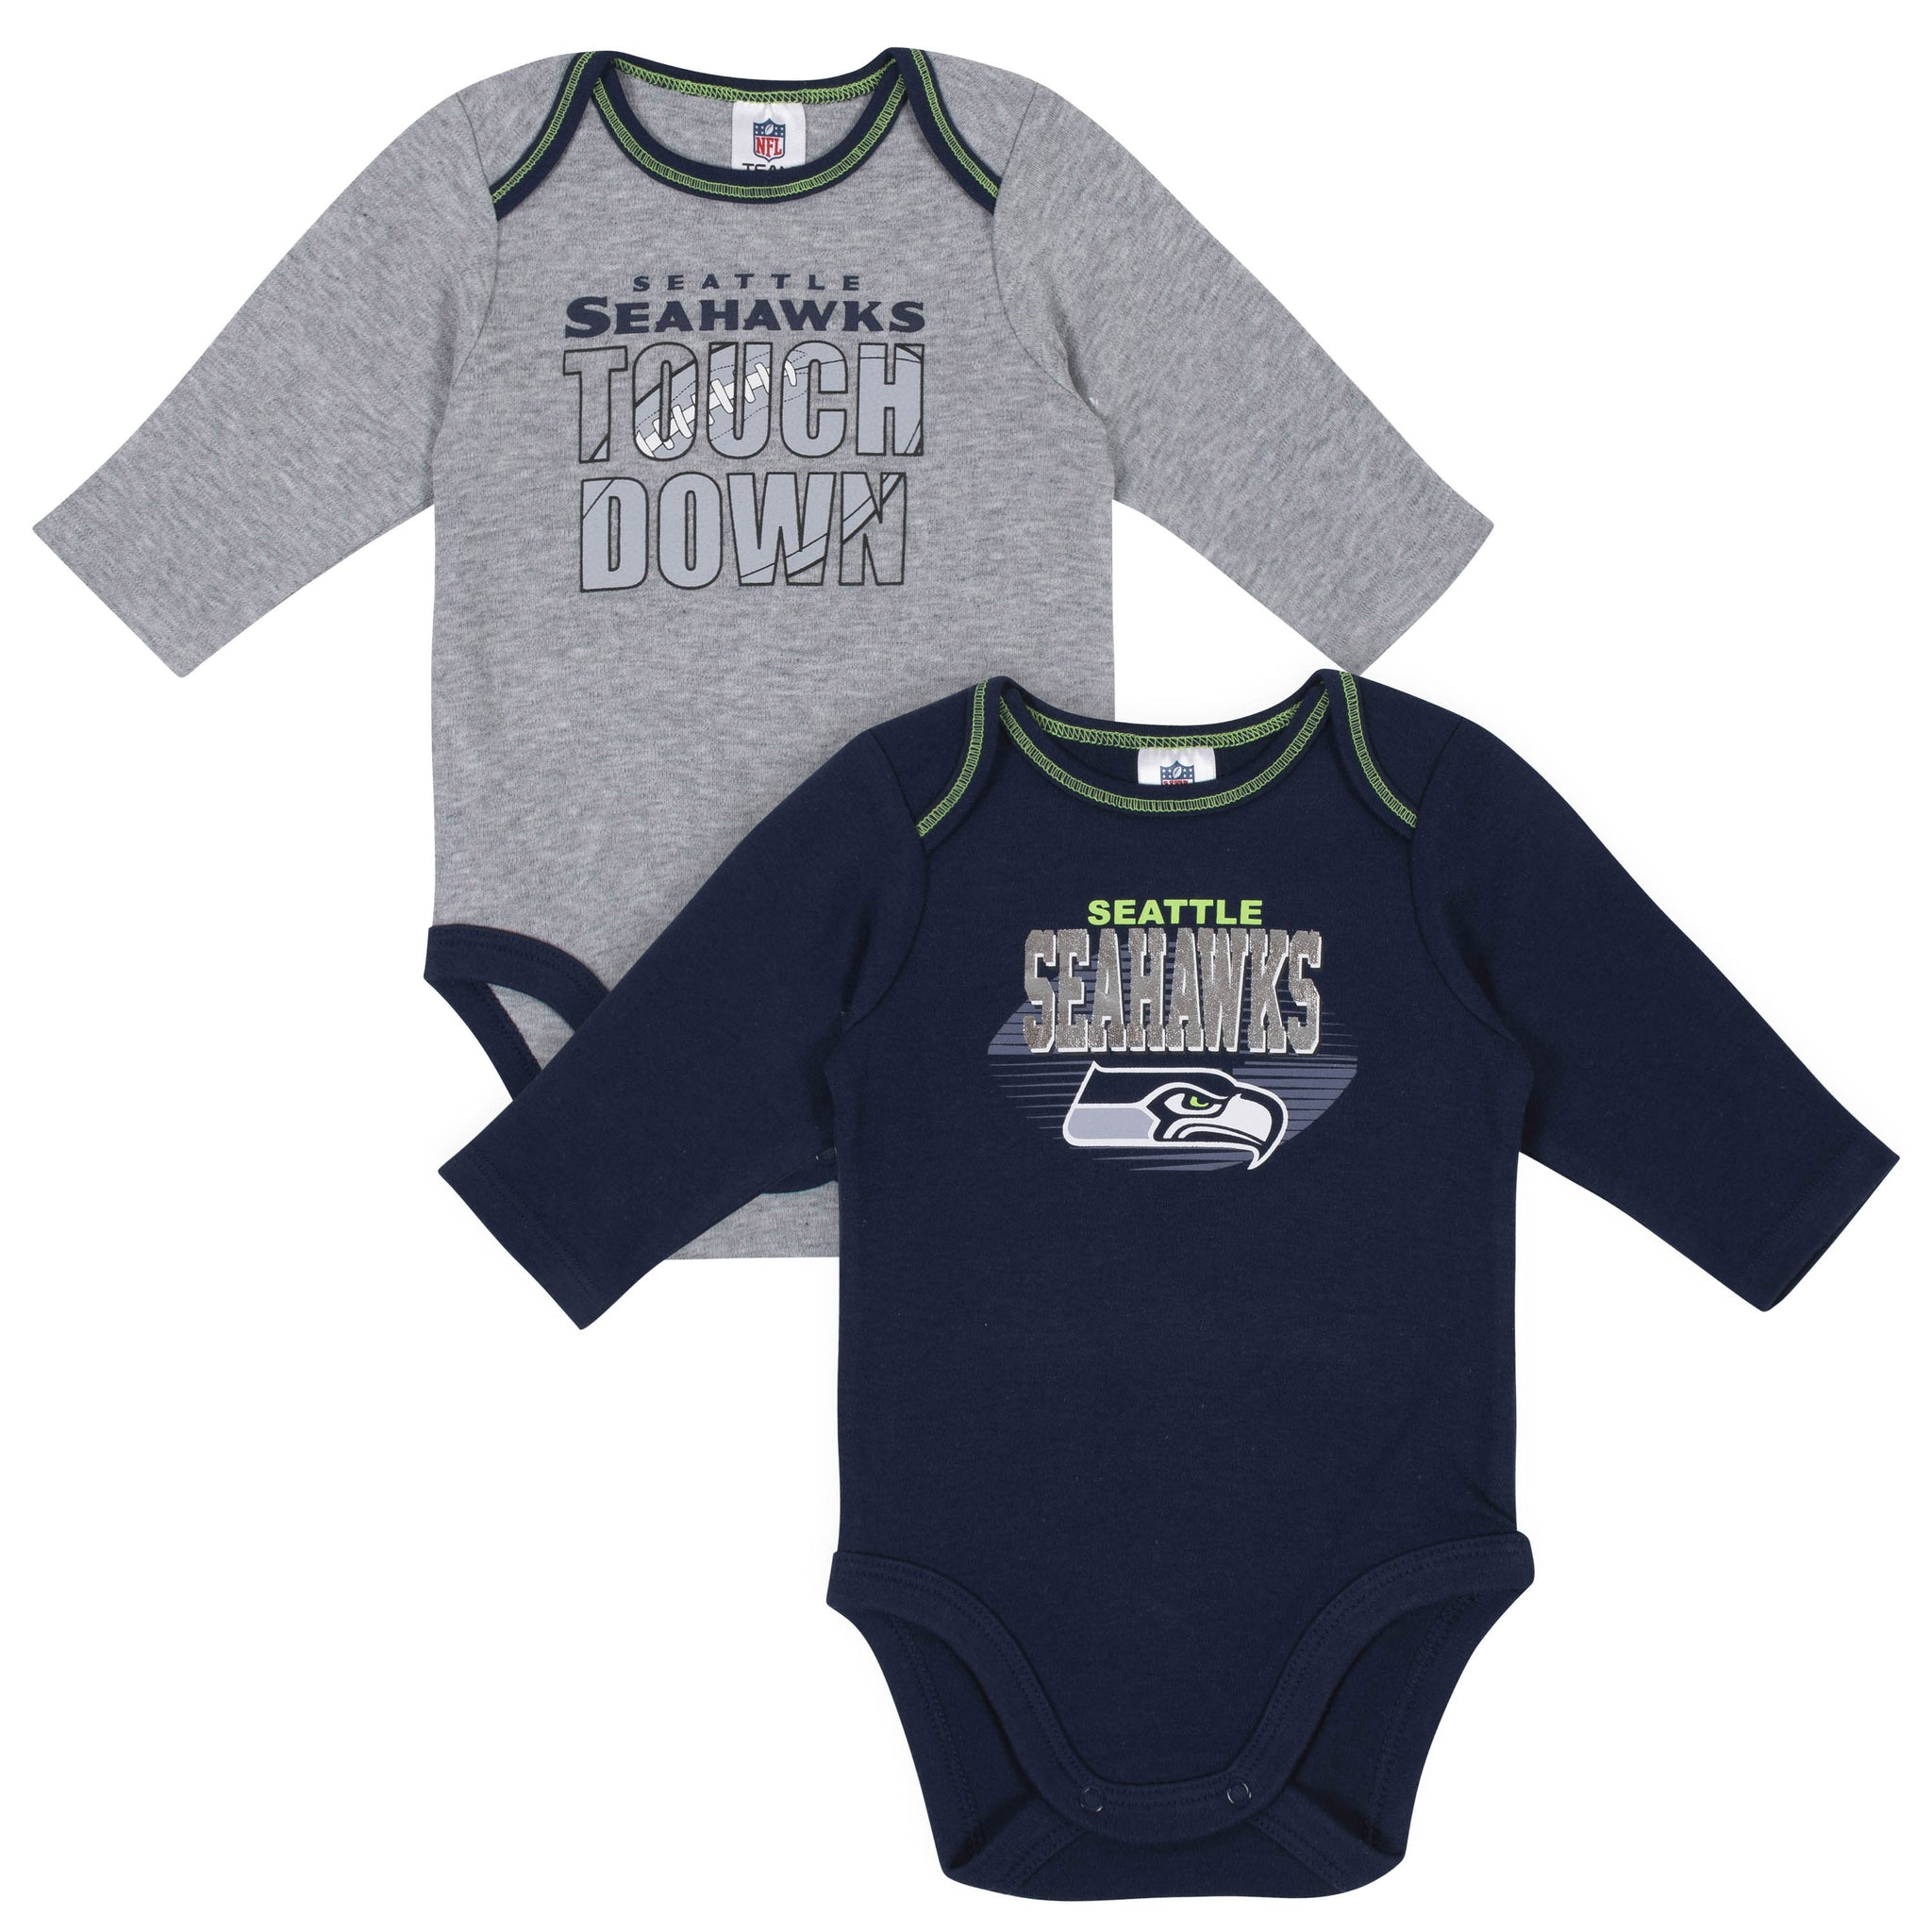 Baby Boys Seattle Seahawks Long Sleeve Bodysuit, 2-pack -Gerber Childrenswear